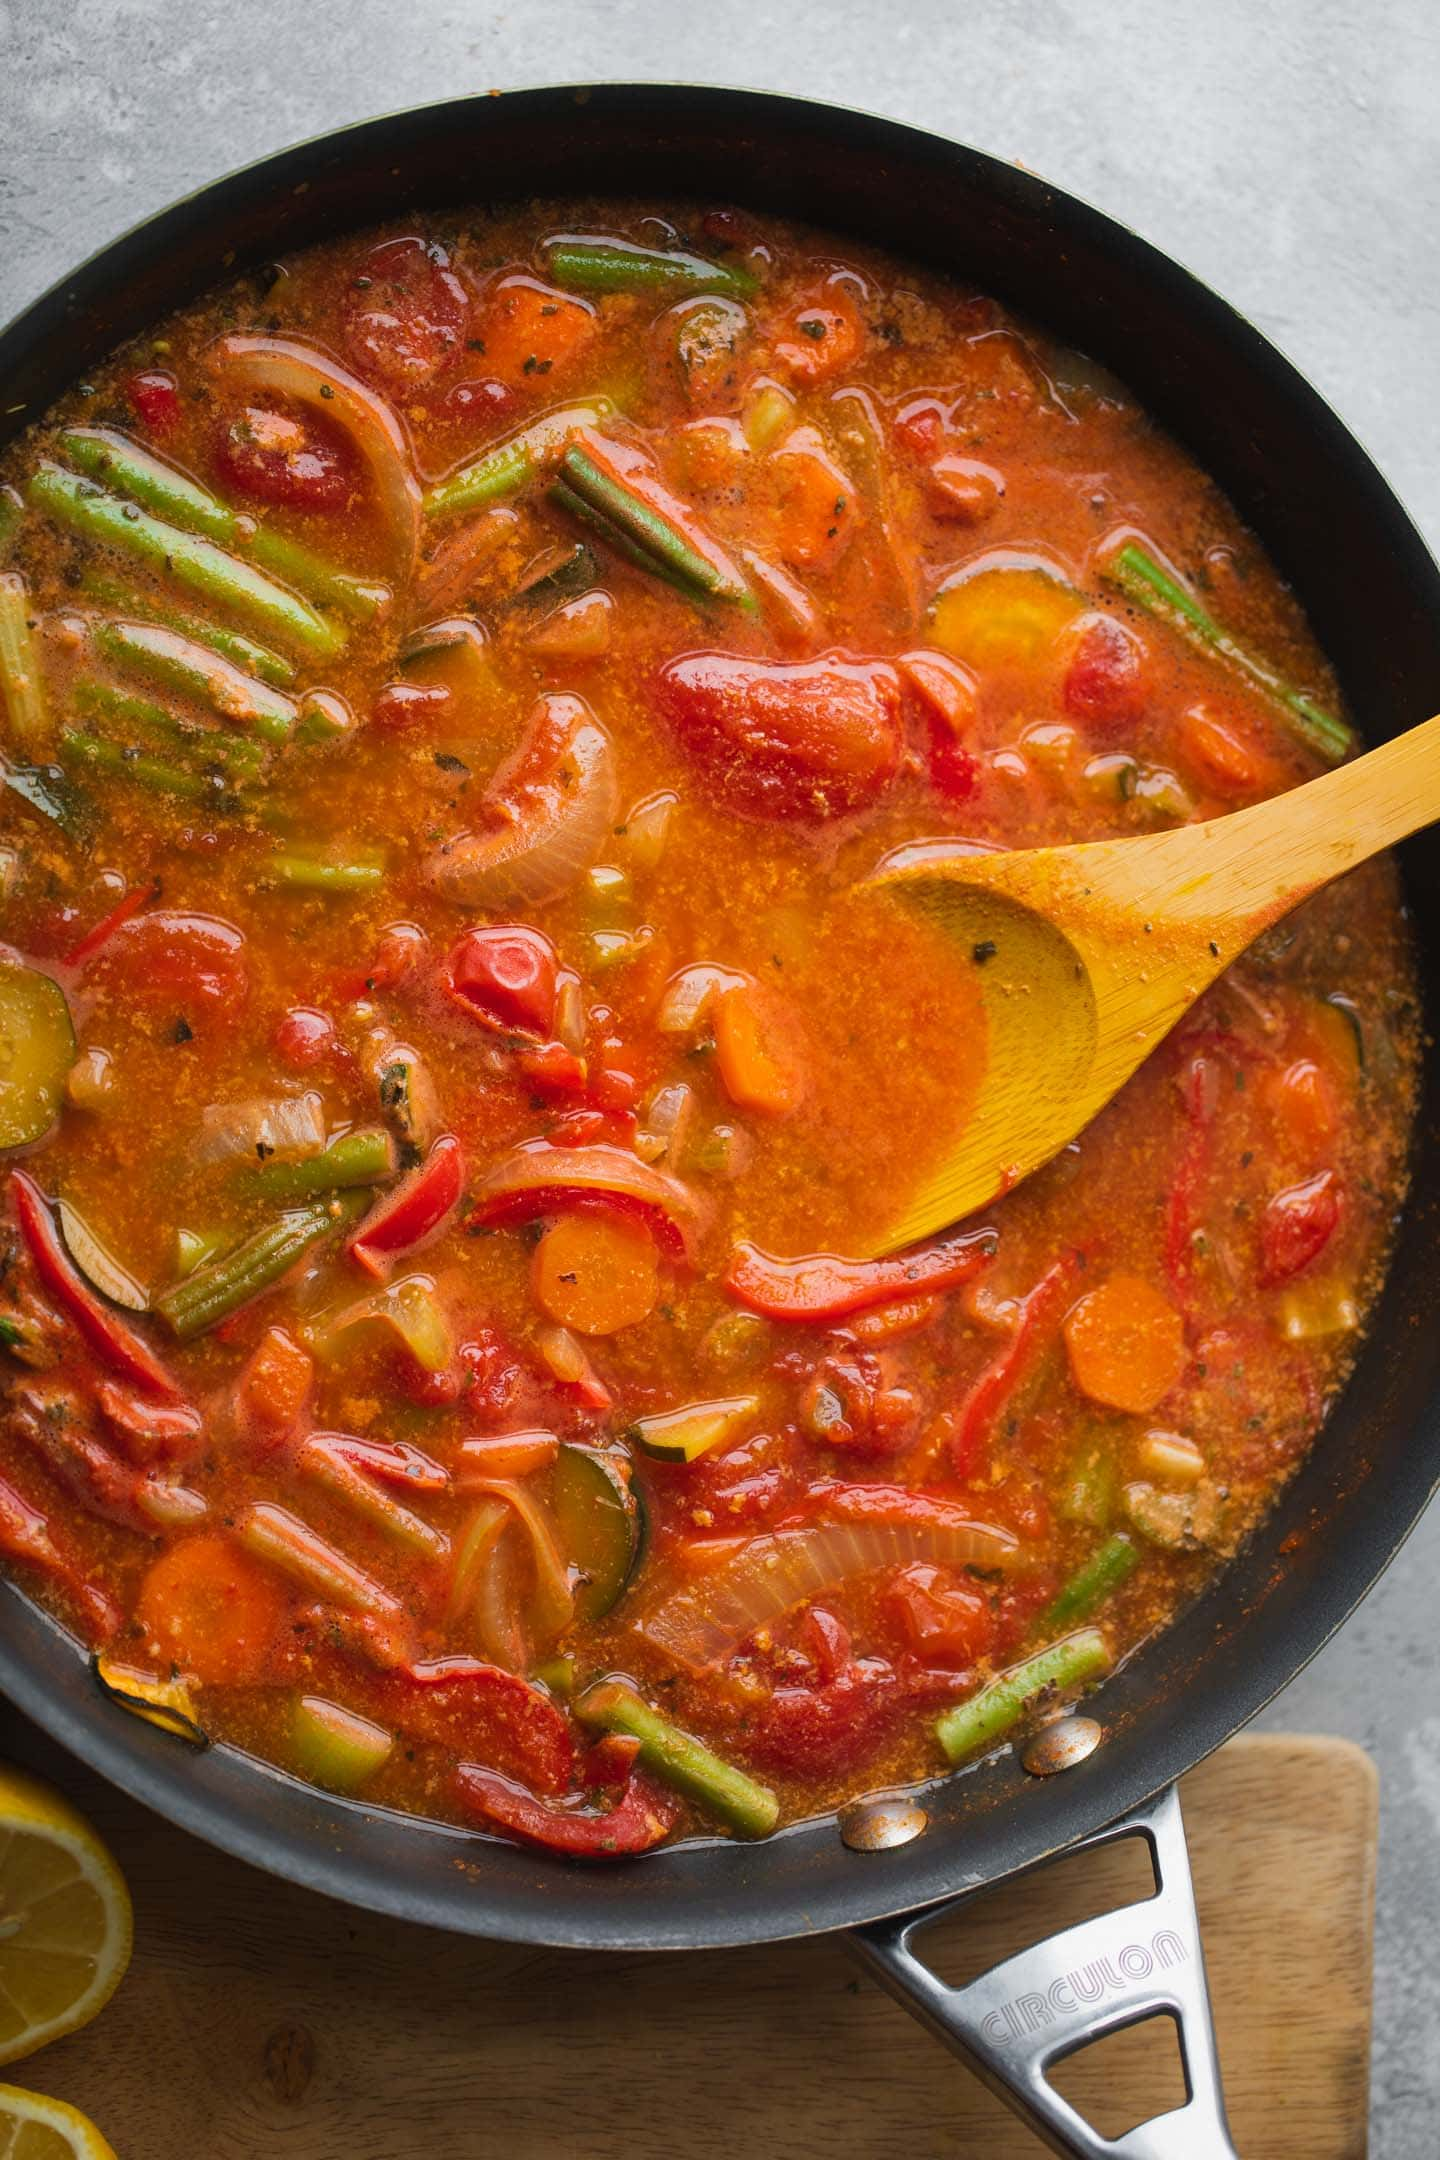 Soup with vegetables in a large pan